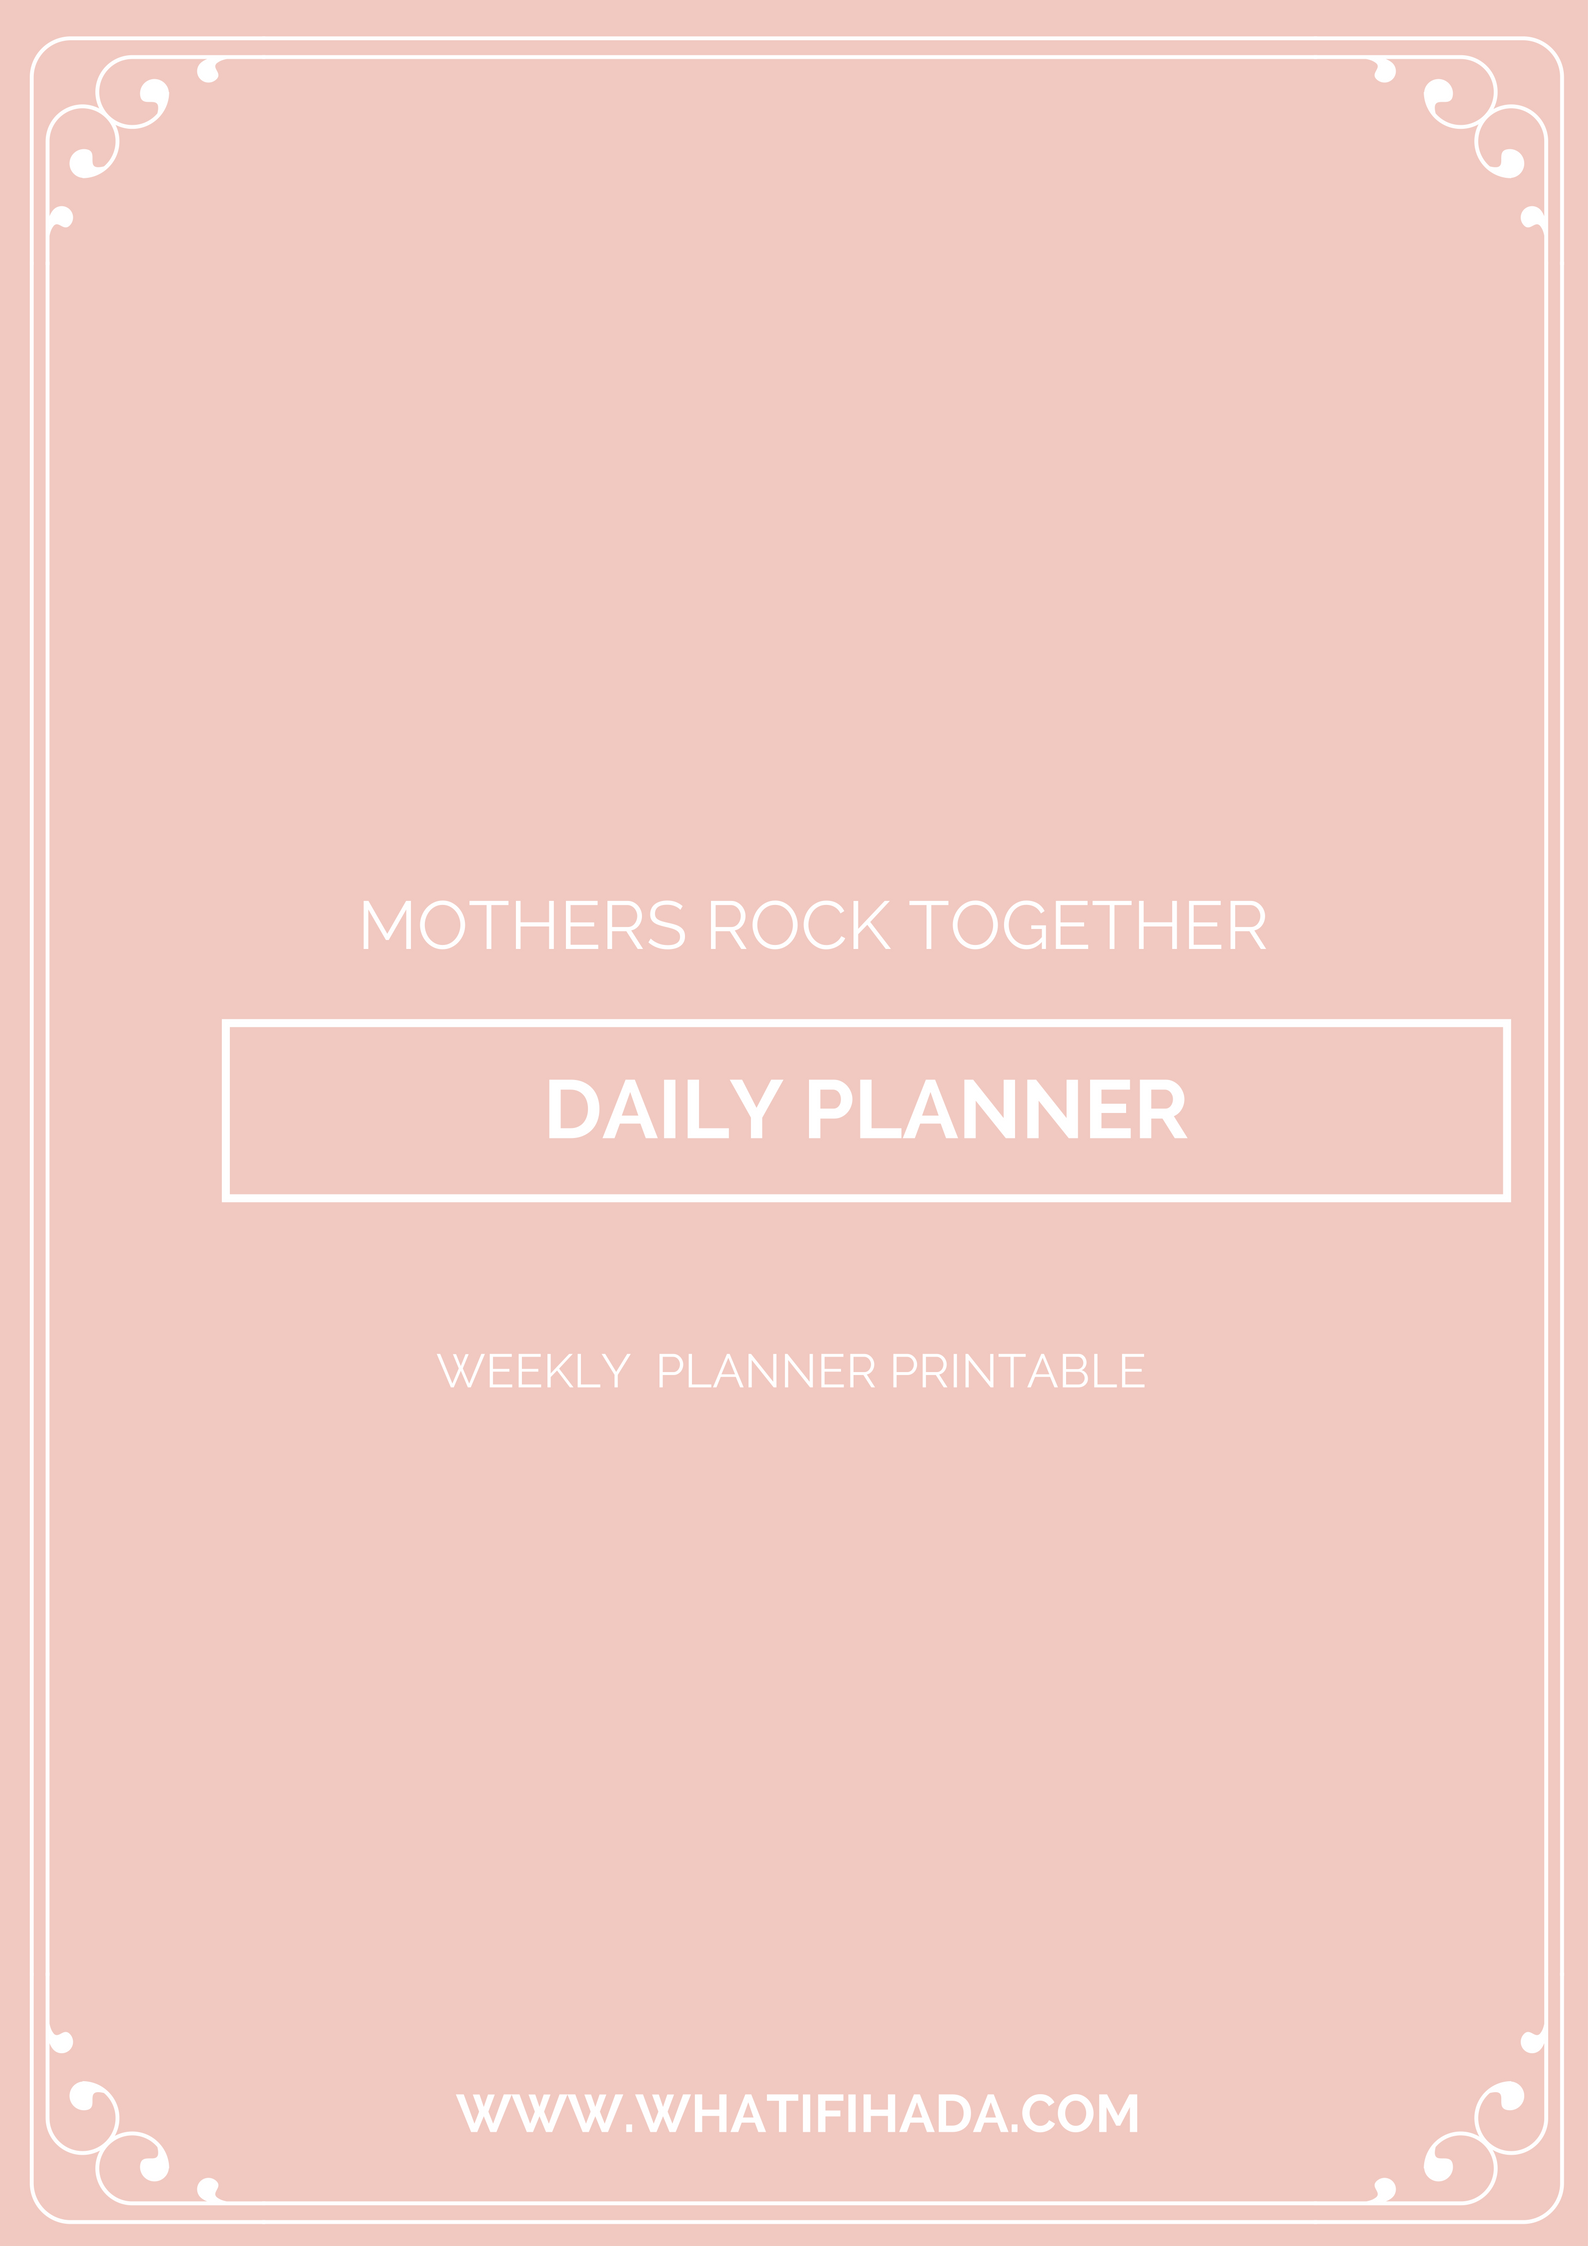 A Daily Planner Printable to prioritise and inspire.   Free to download in printables.